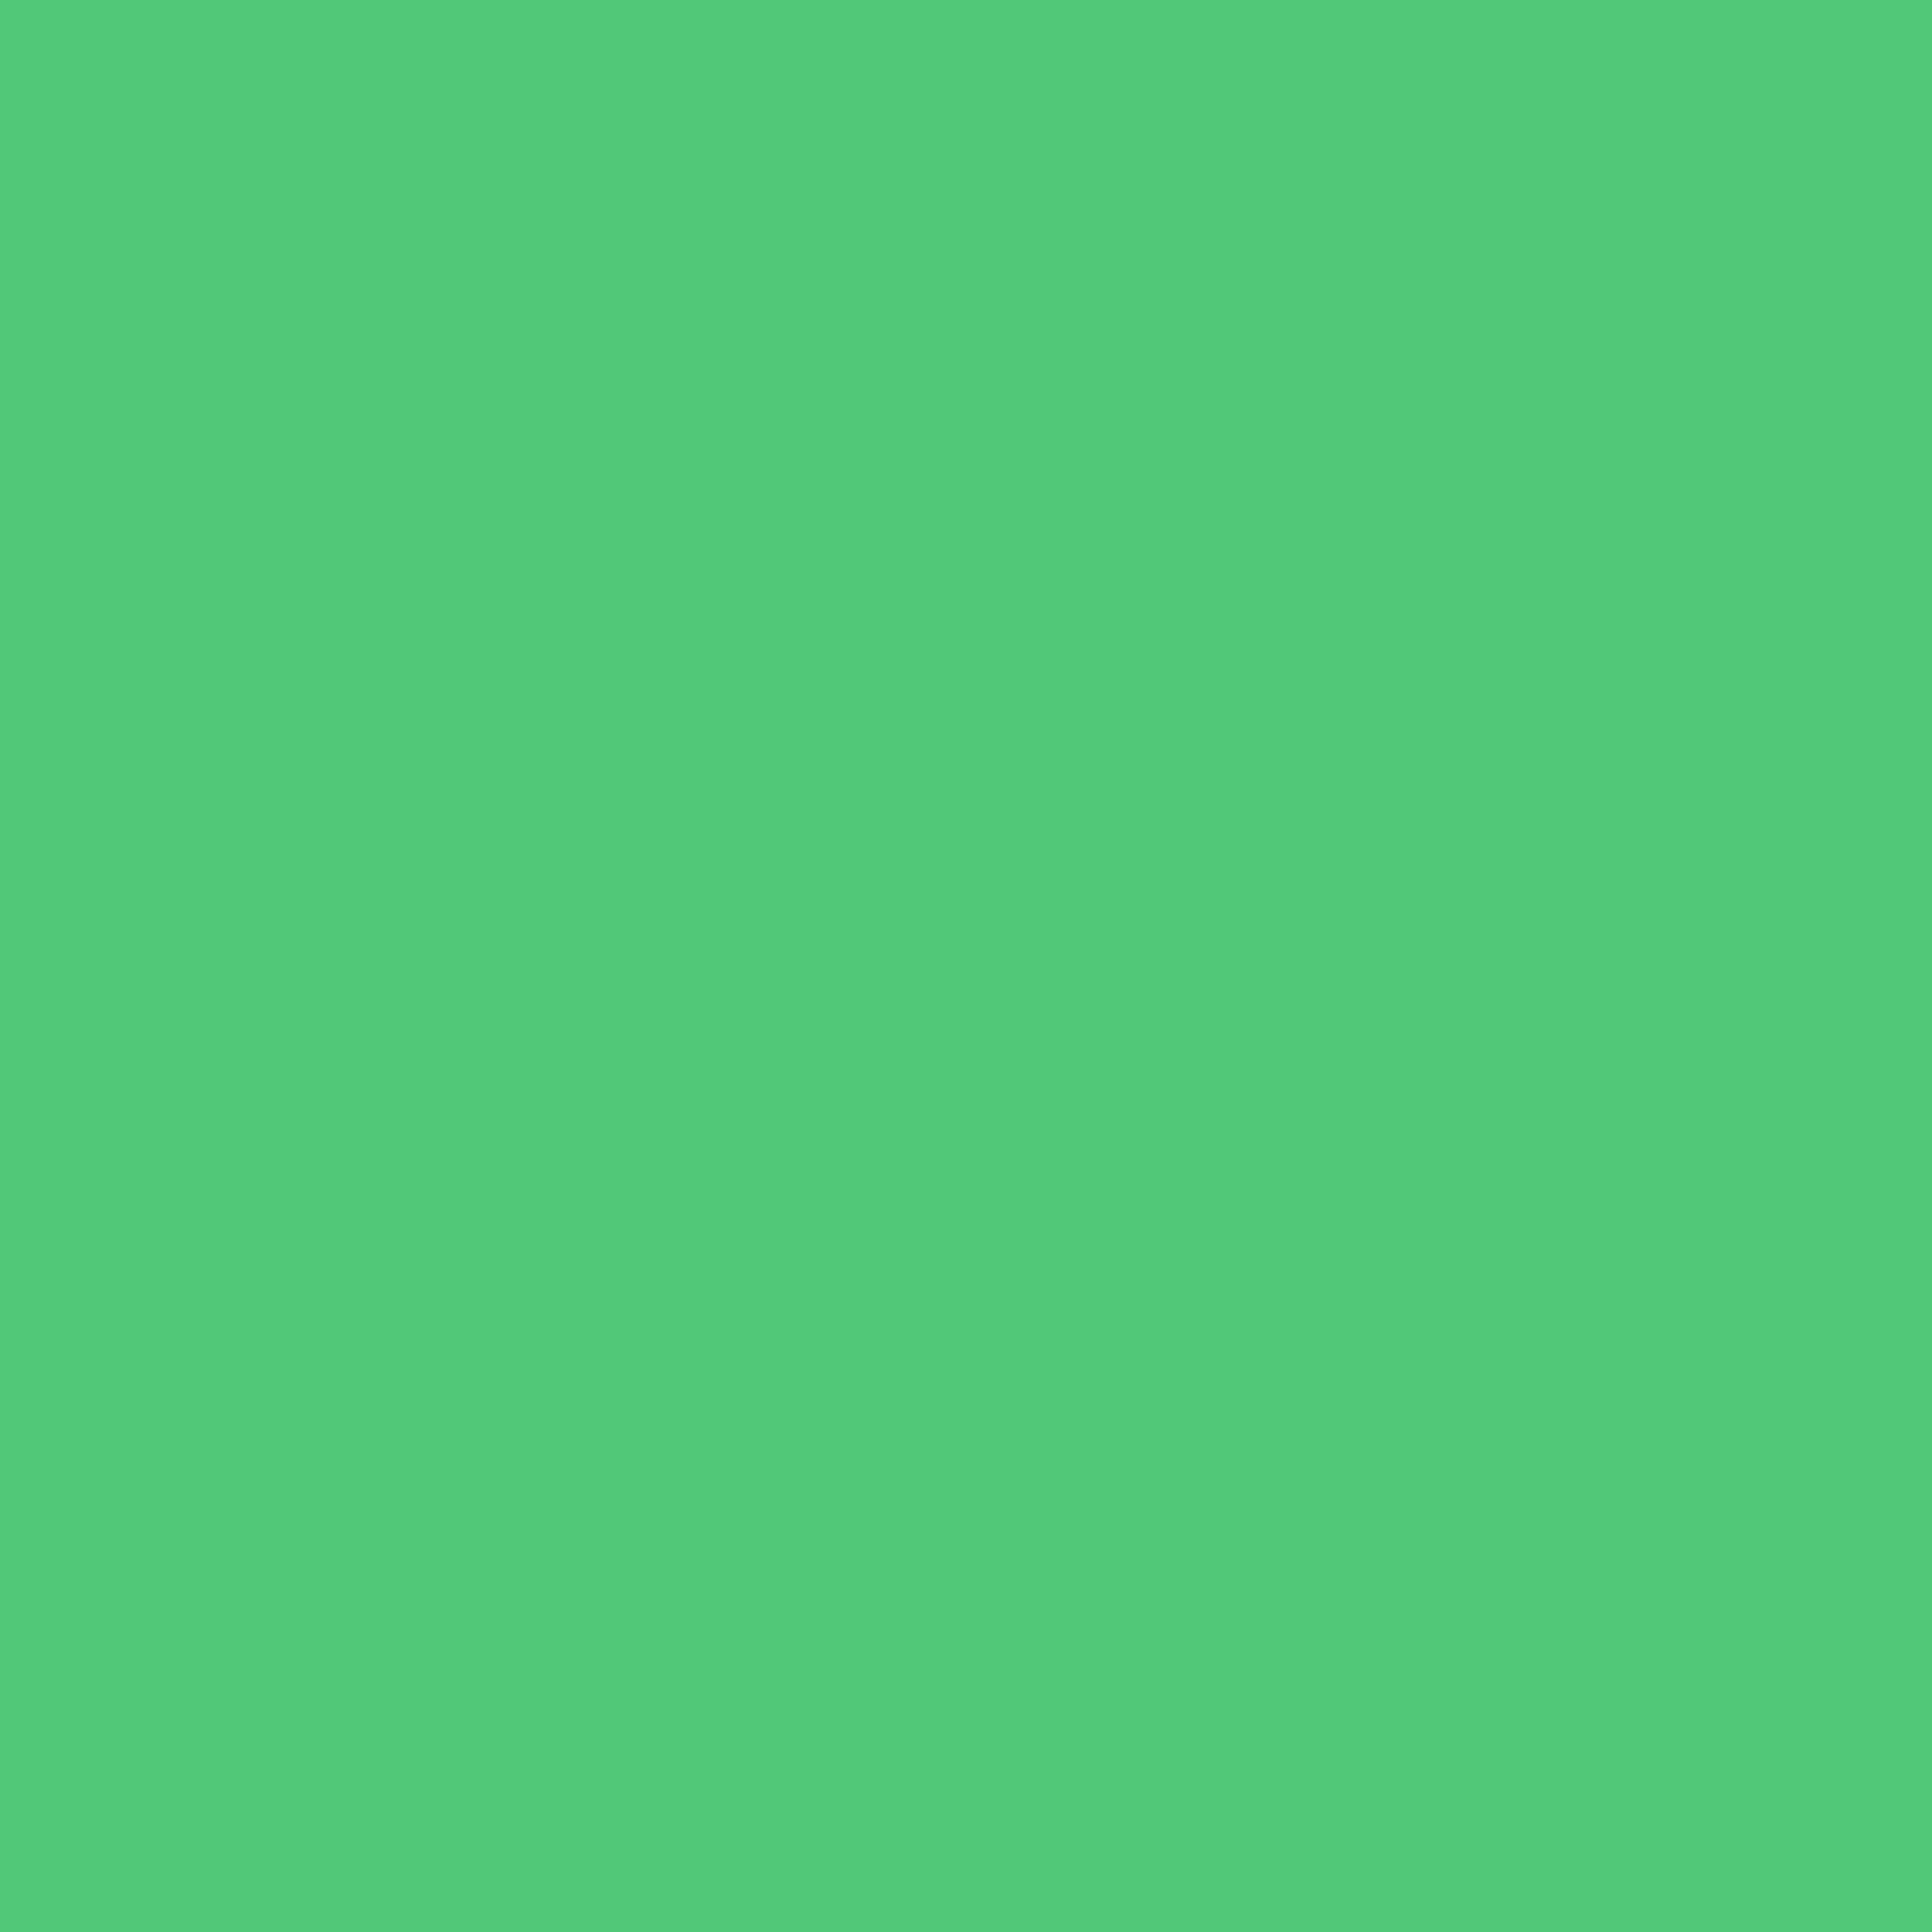 2732x2732 Emerald Solid Color Background